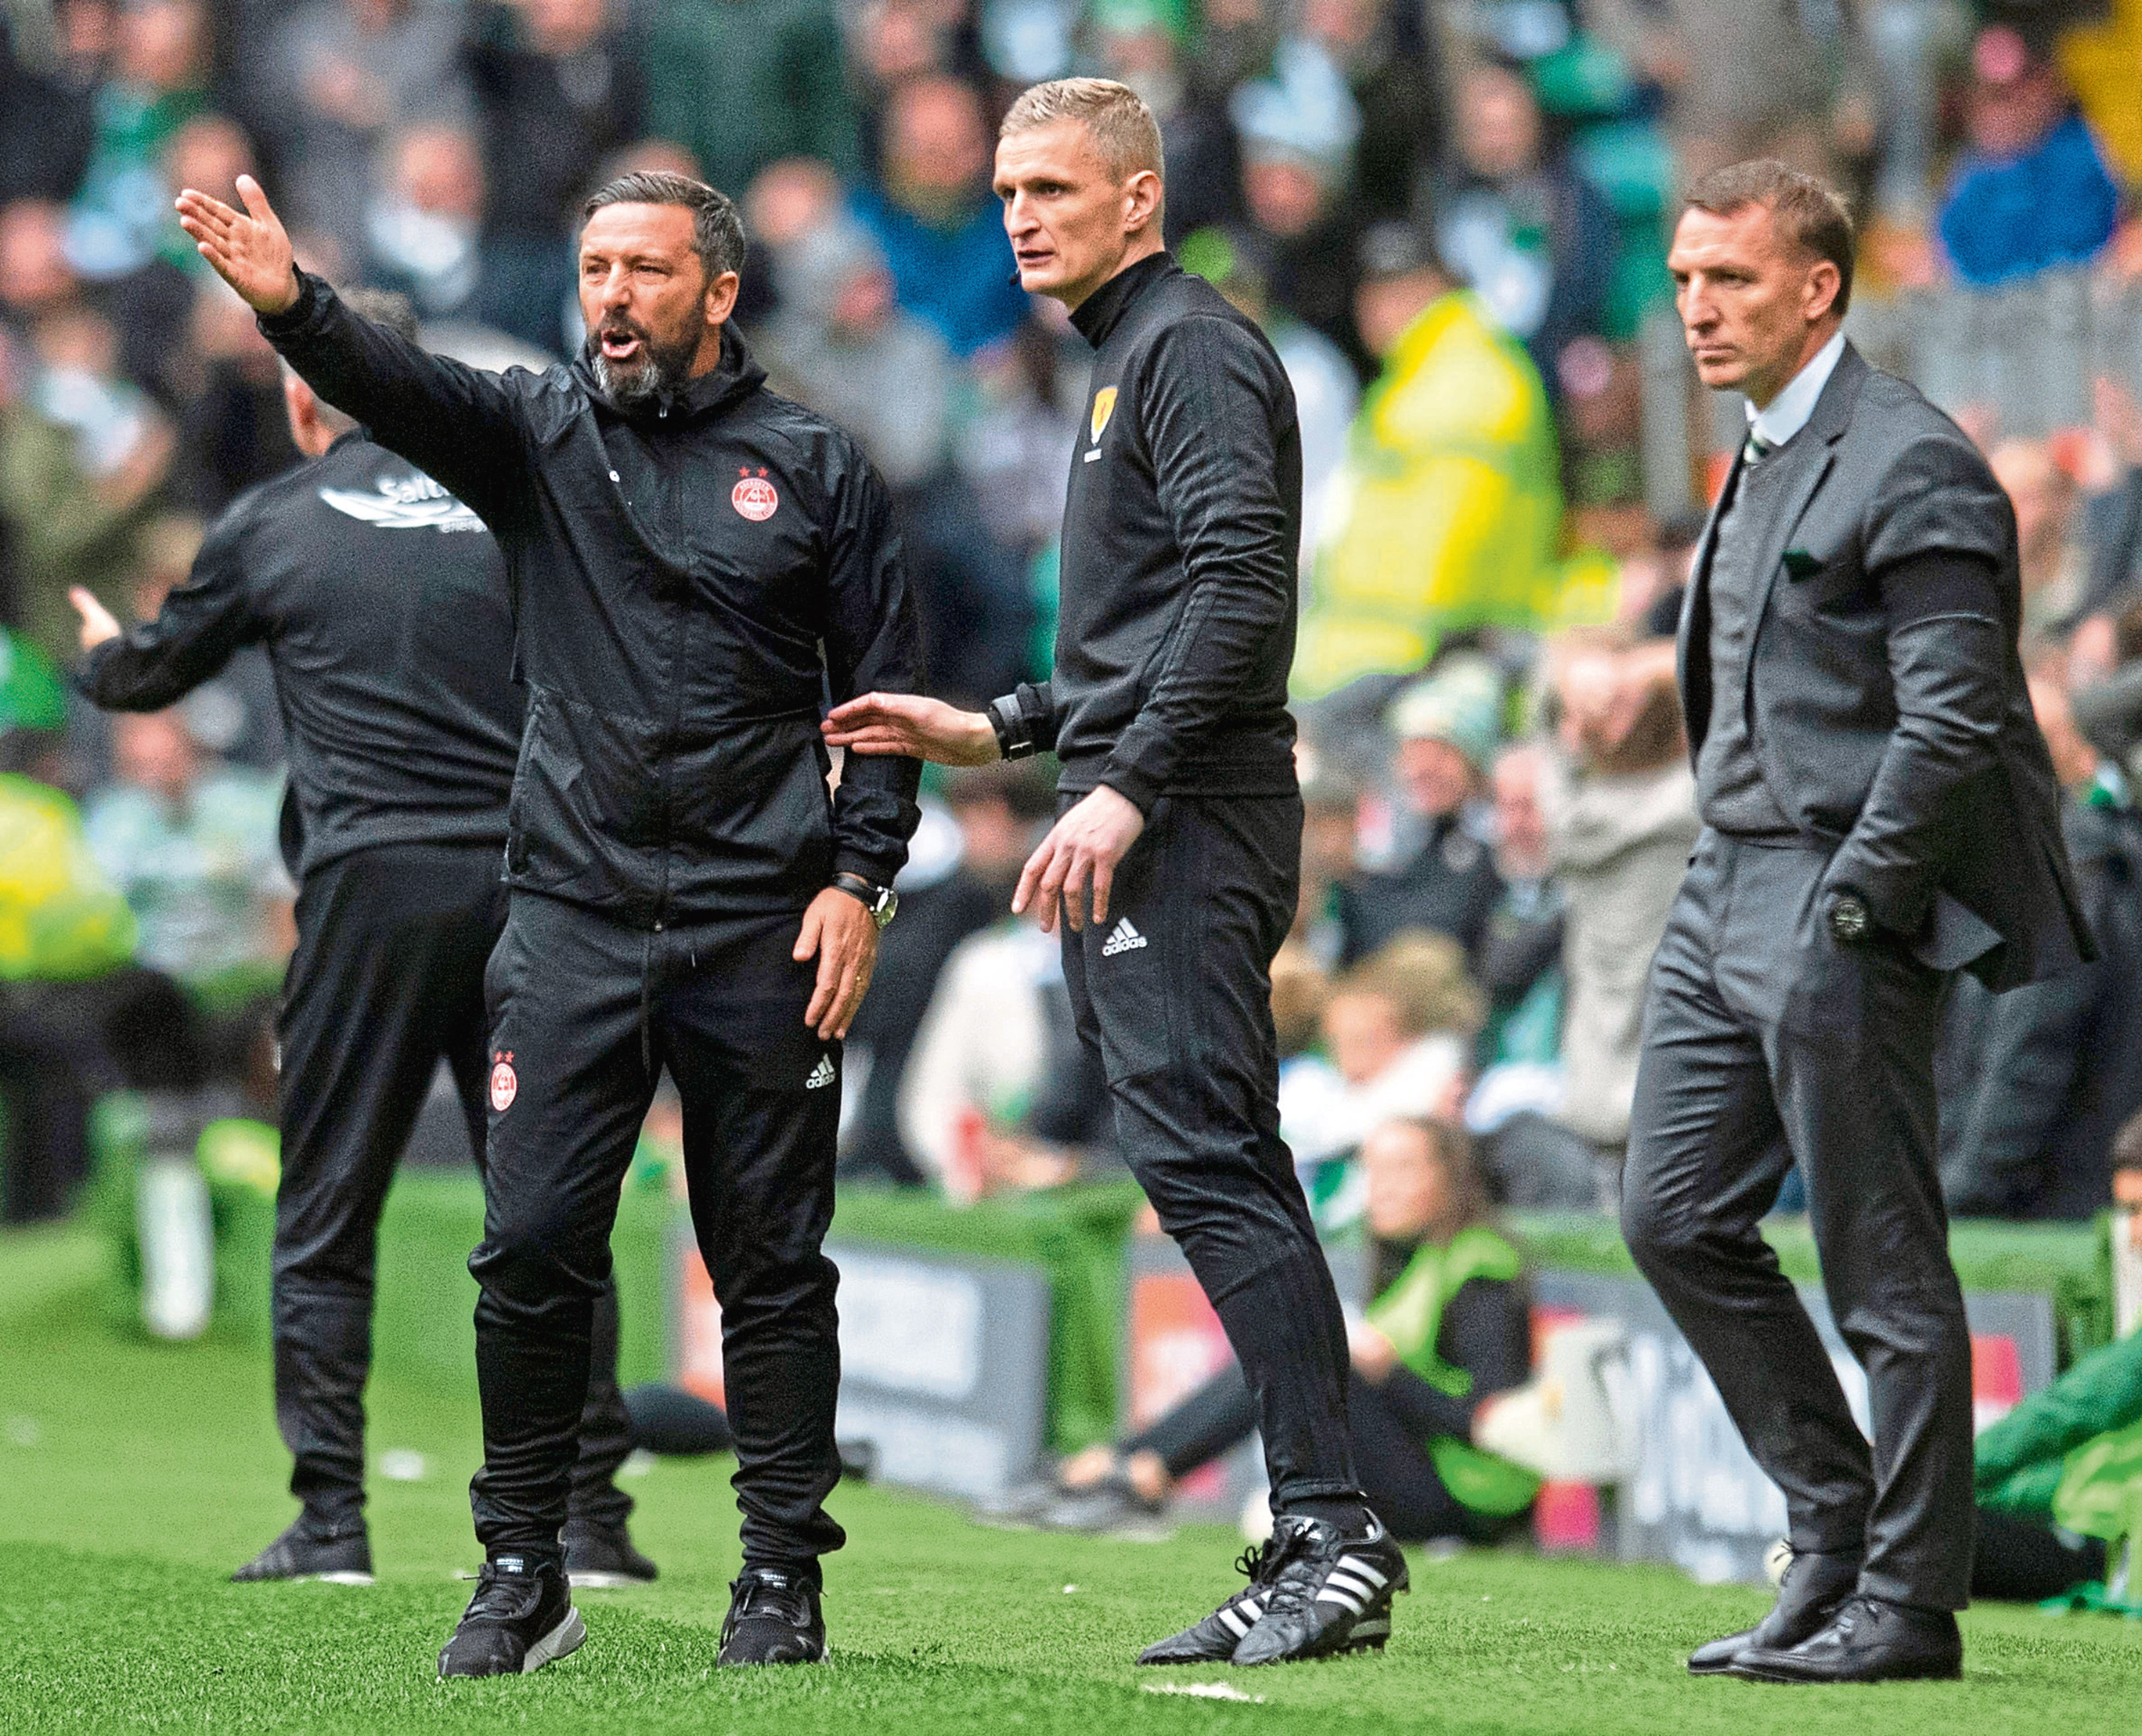 Aberdeen manager Derek McInnes (left) with Celtic manager Brendan Rodgers on the touchline.